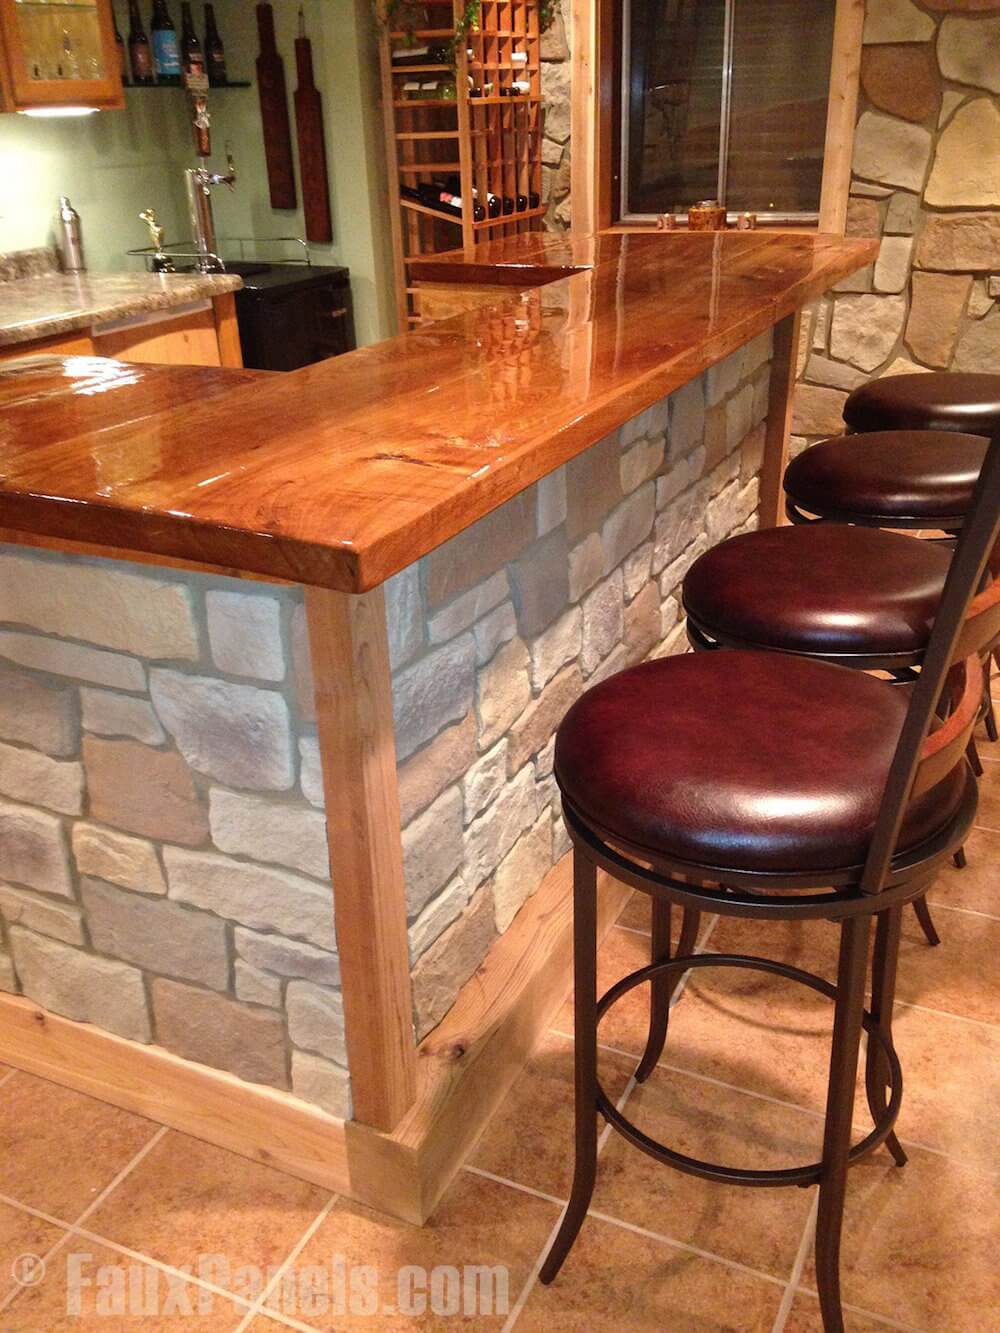 Alternatively, for a more rustic look this stacked stone facade is a perfect solution. Paired with wooden cabinetry, a butcher-block island, and plenty of wine bottle storage, the stone stands out beautifully.